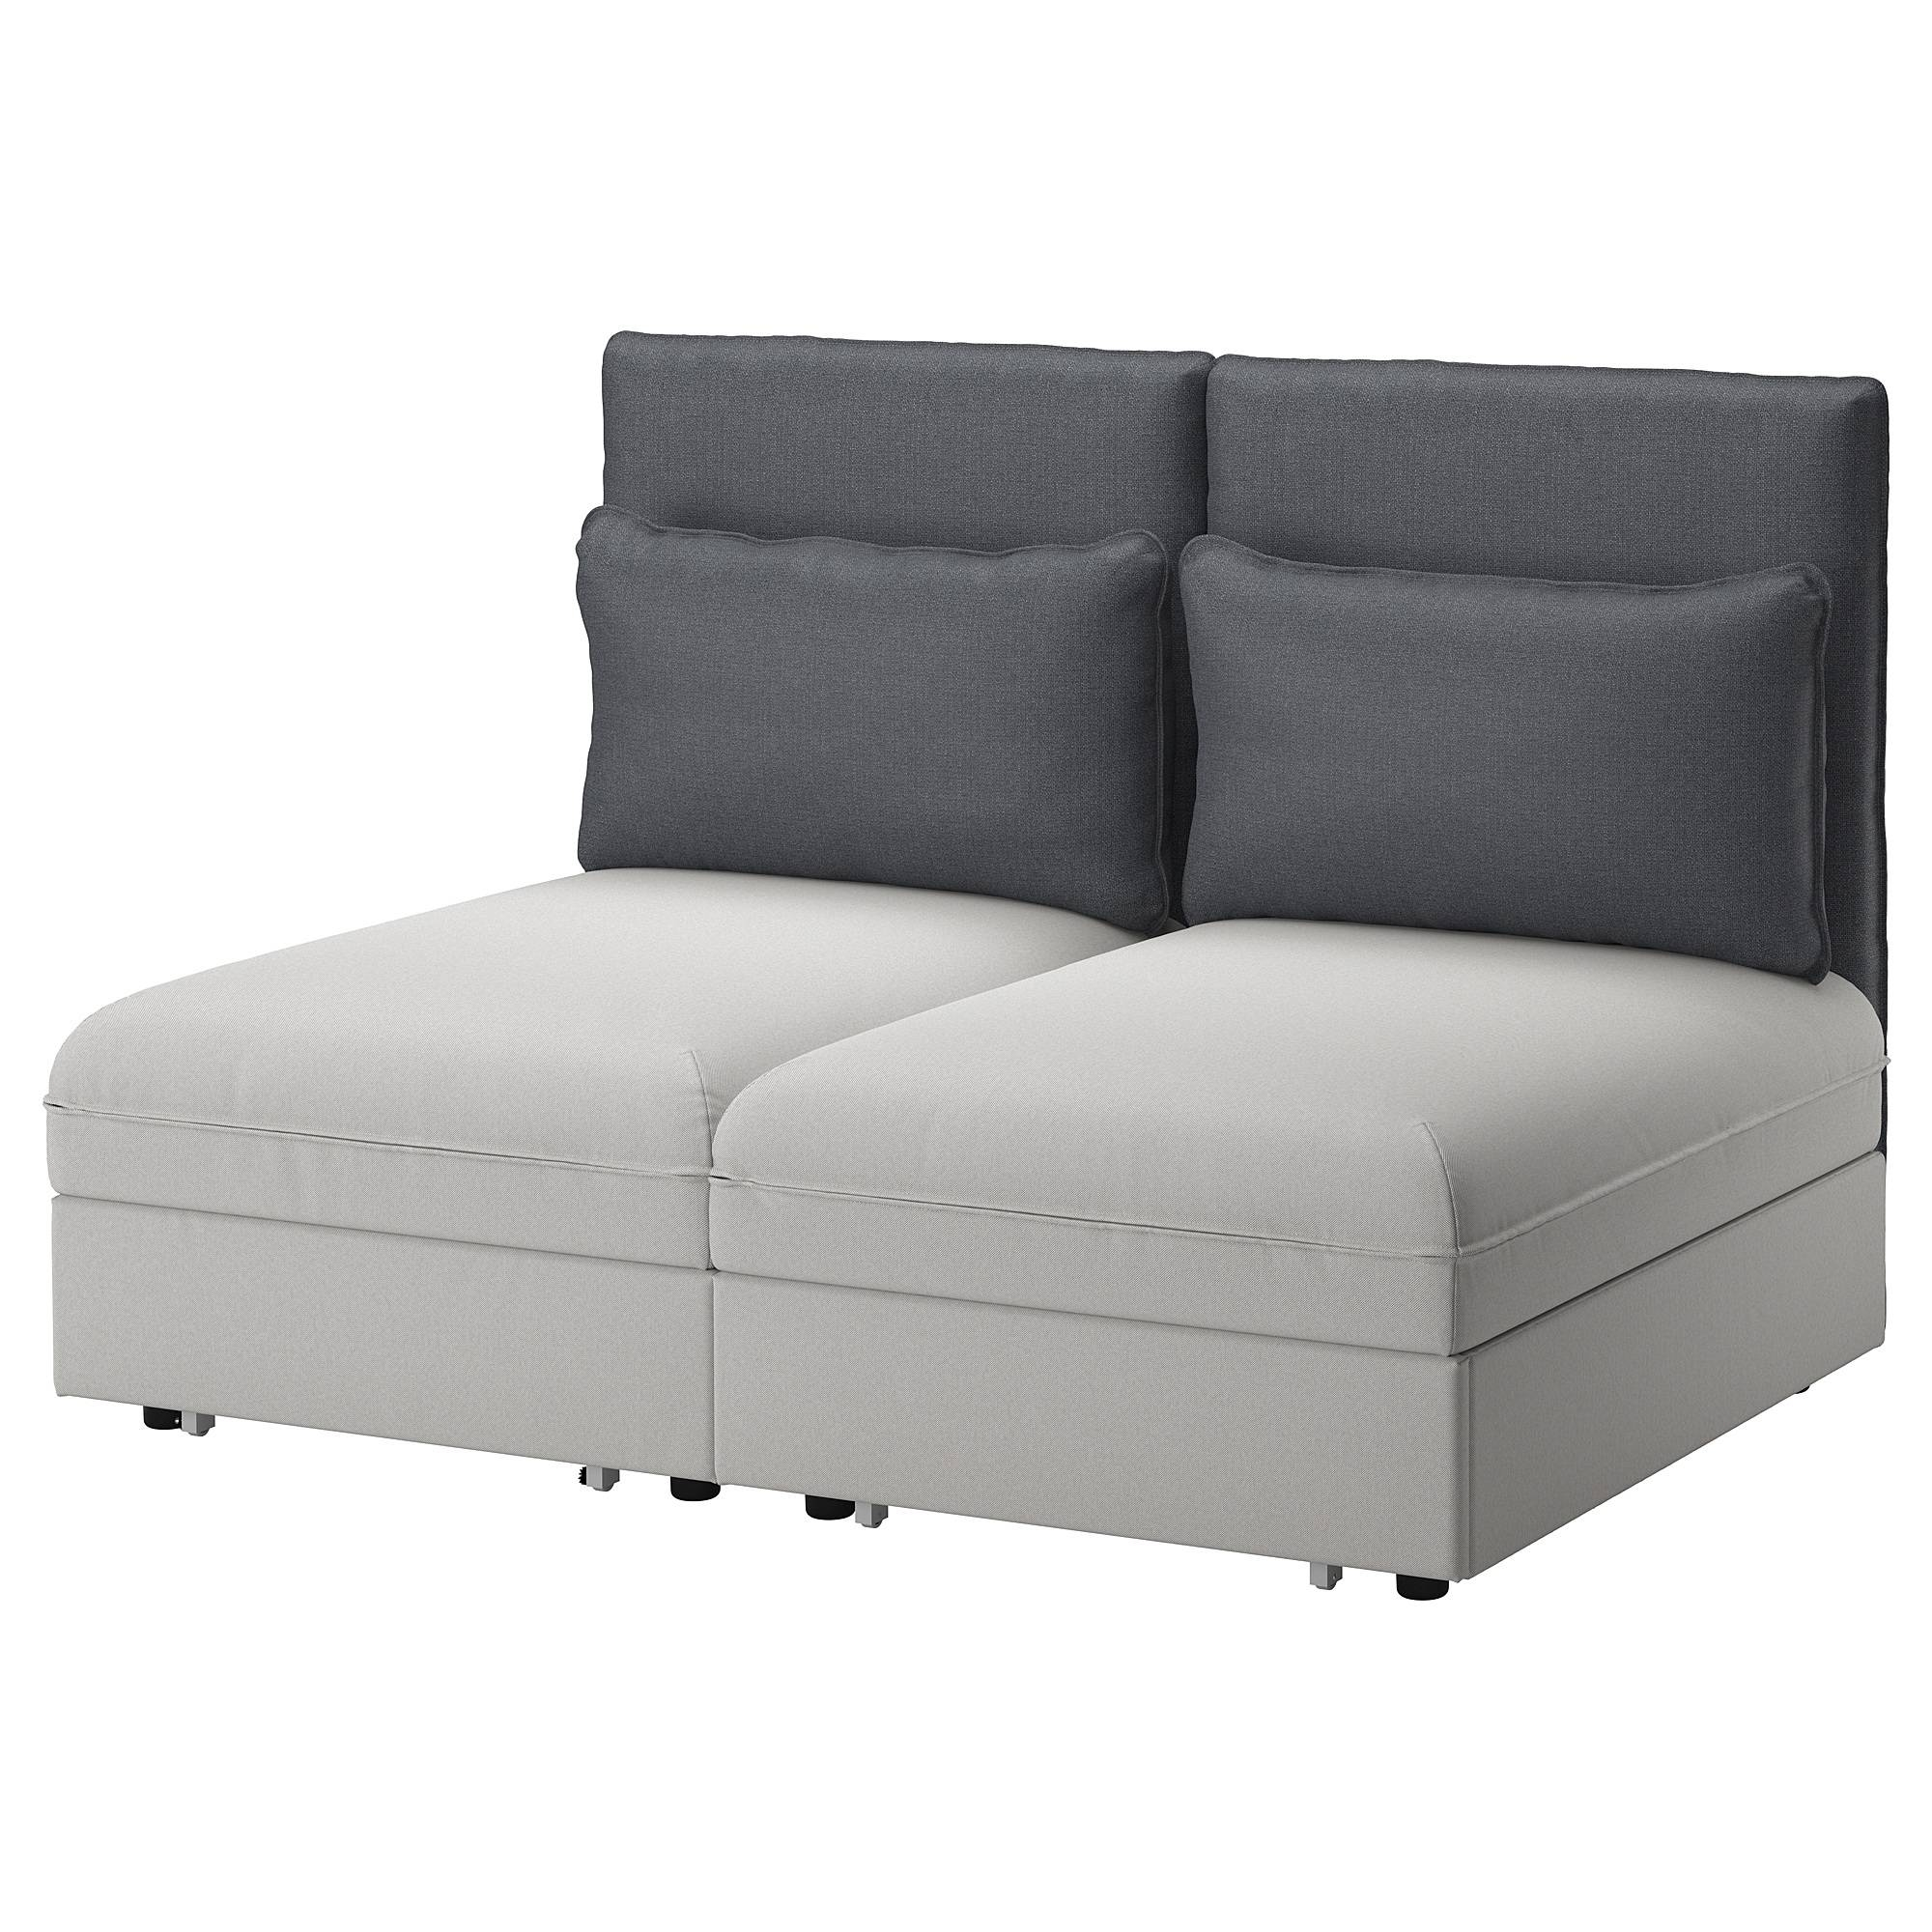 Sofa Beds & Futons - Ikea with regard to Mini Sofa Beds (Image 27 of 30)